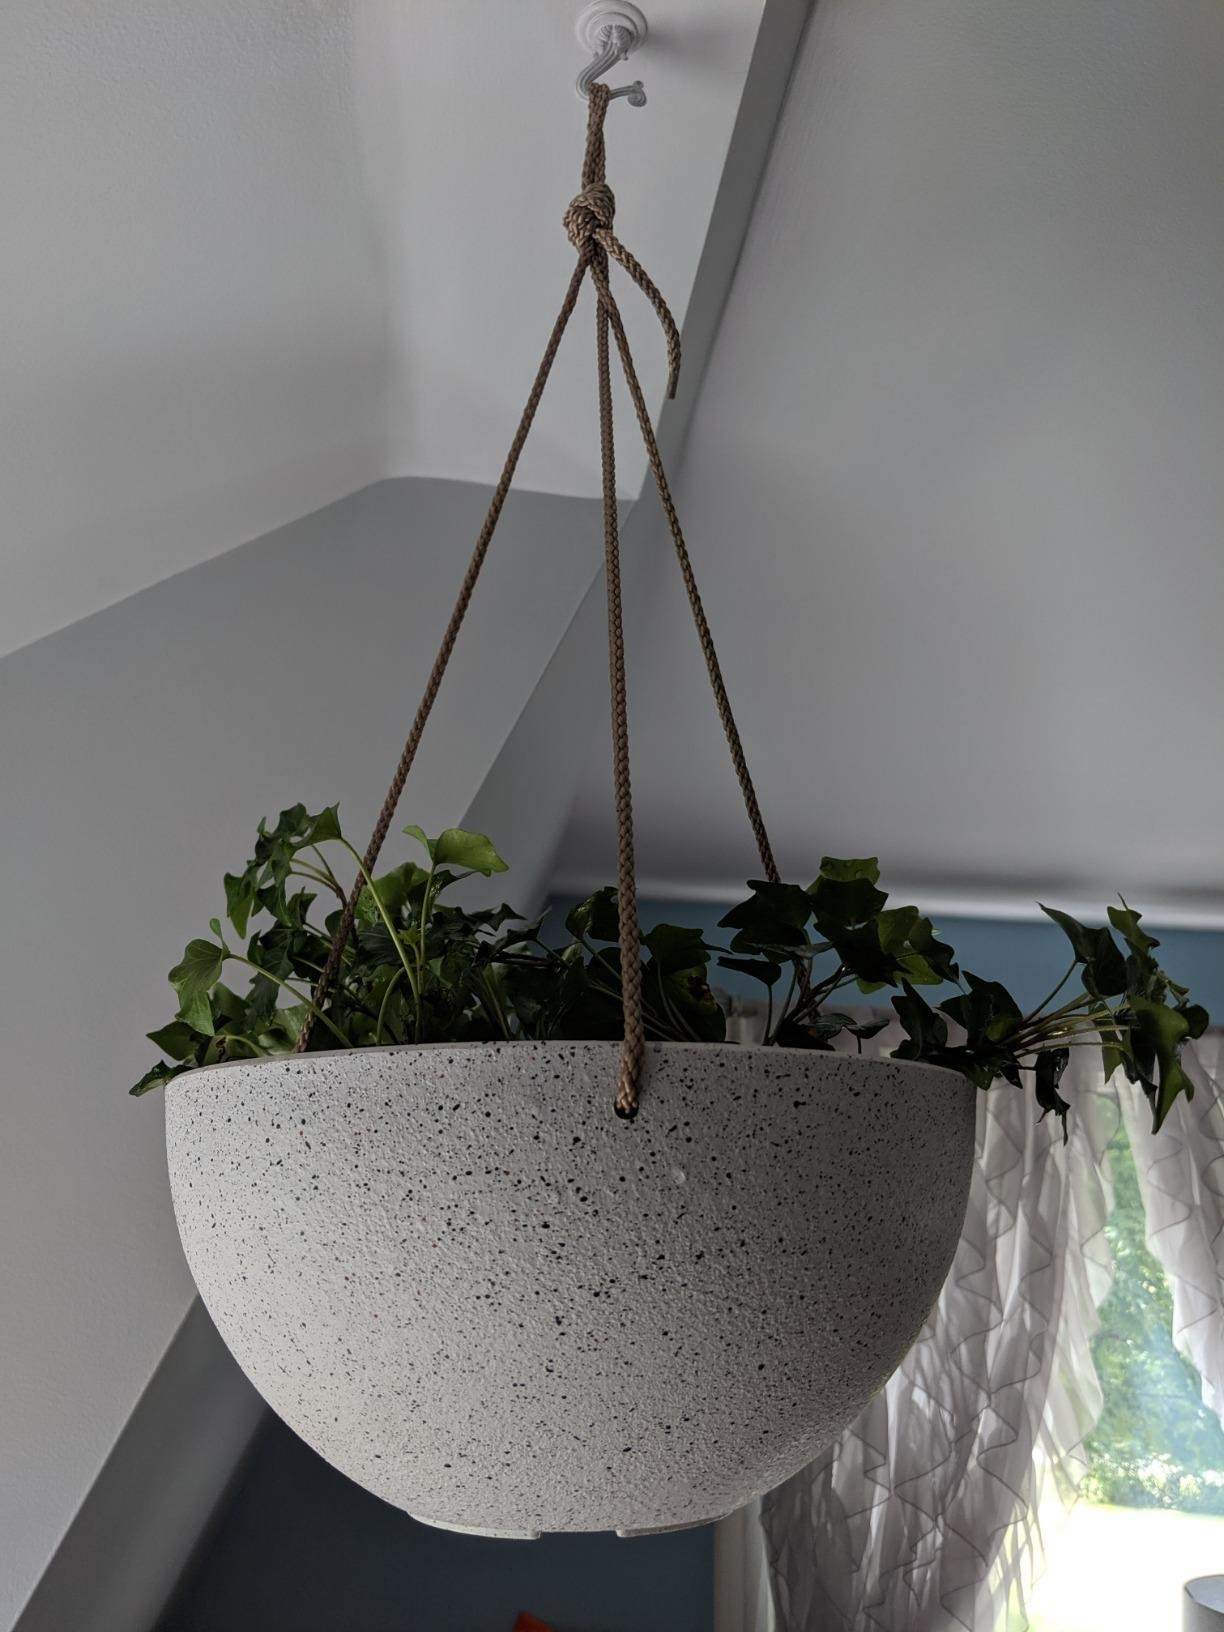 The half sphere planter installed from a ceiling